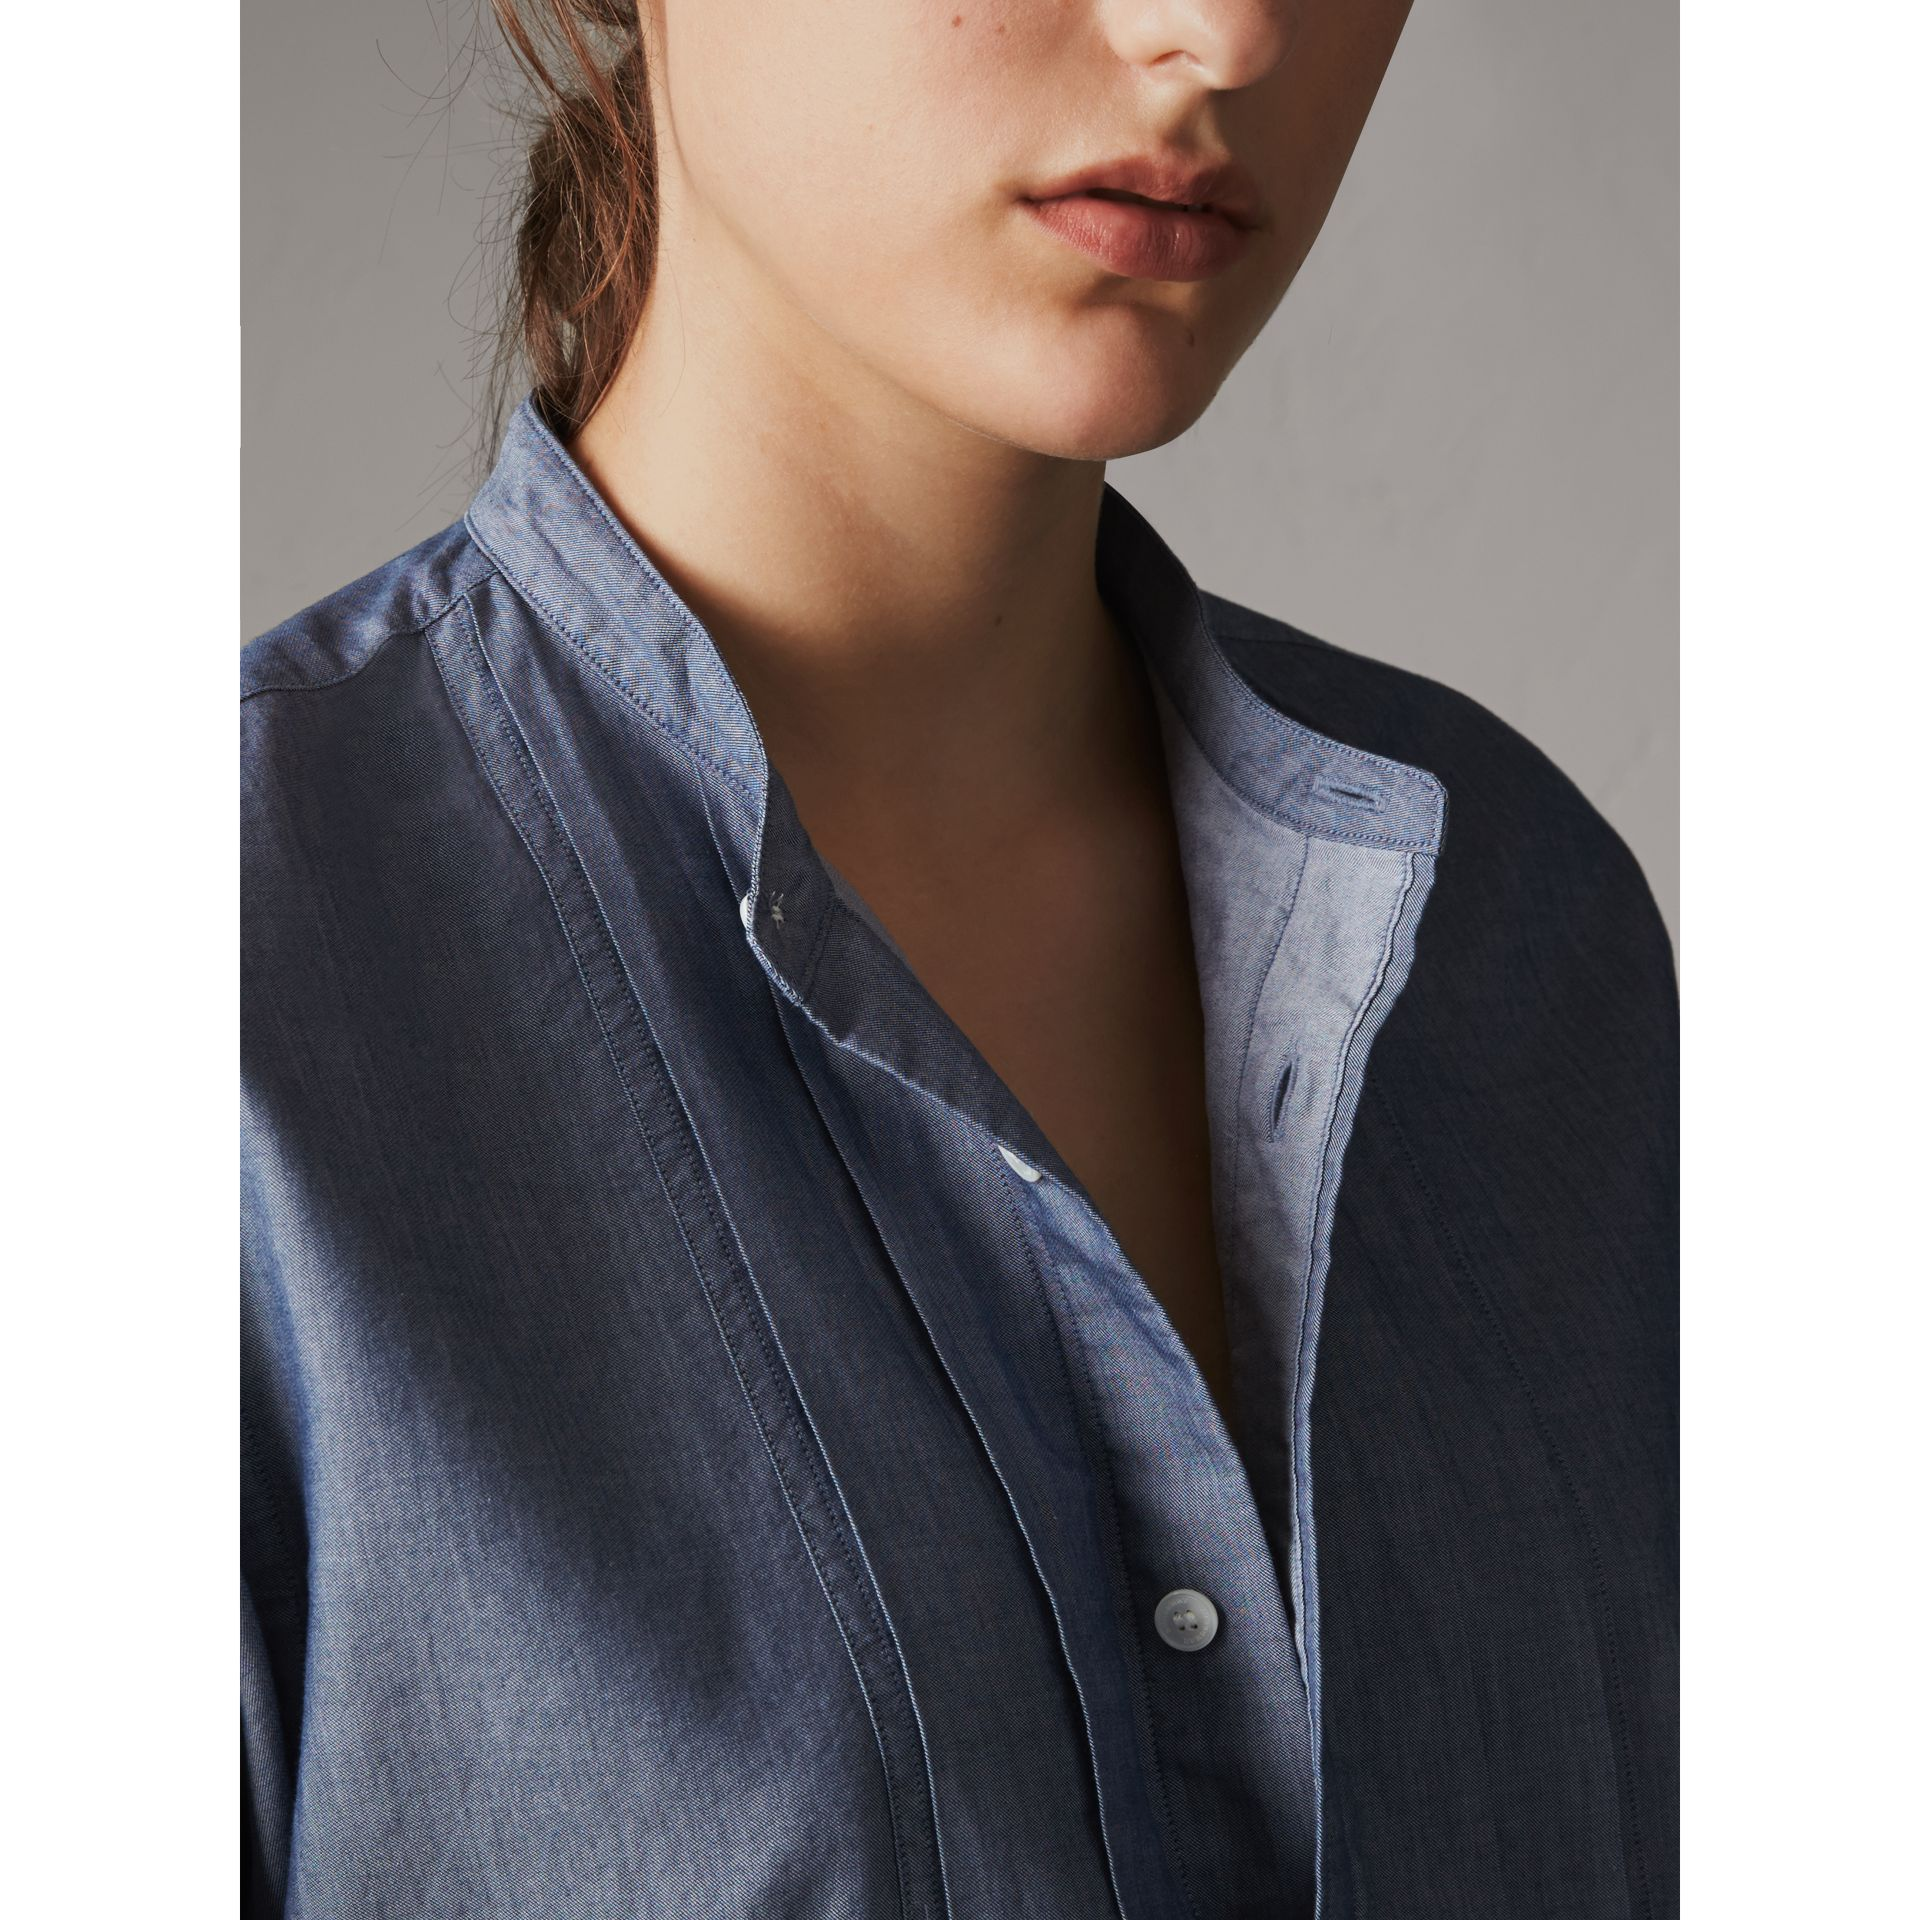 Unisex Grandad Collar Pleated Bib Cotton Shirt in Denim Blue - Women | Burberry - gallery image 2